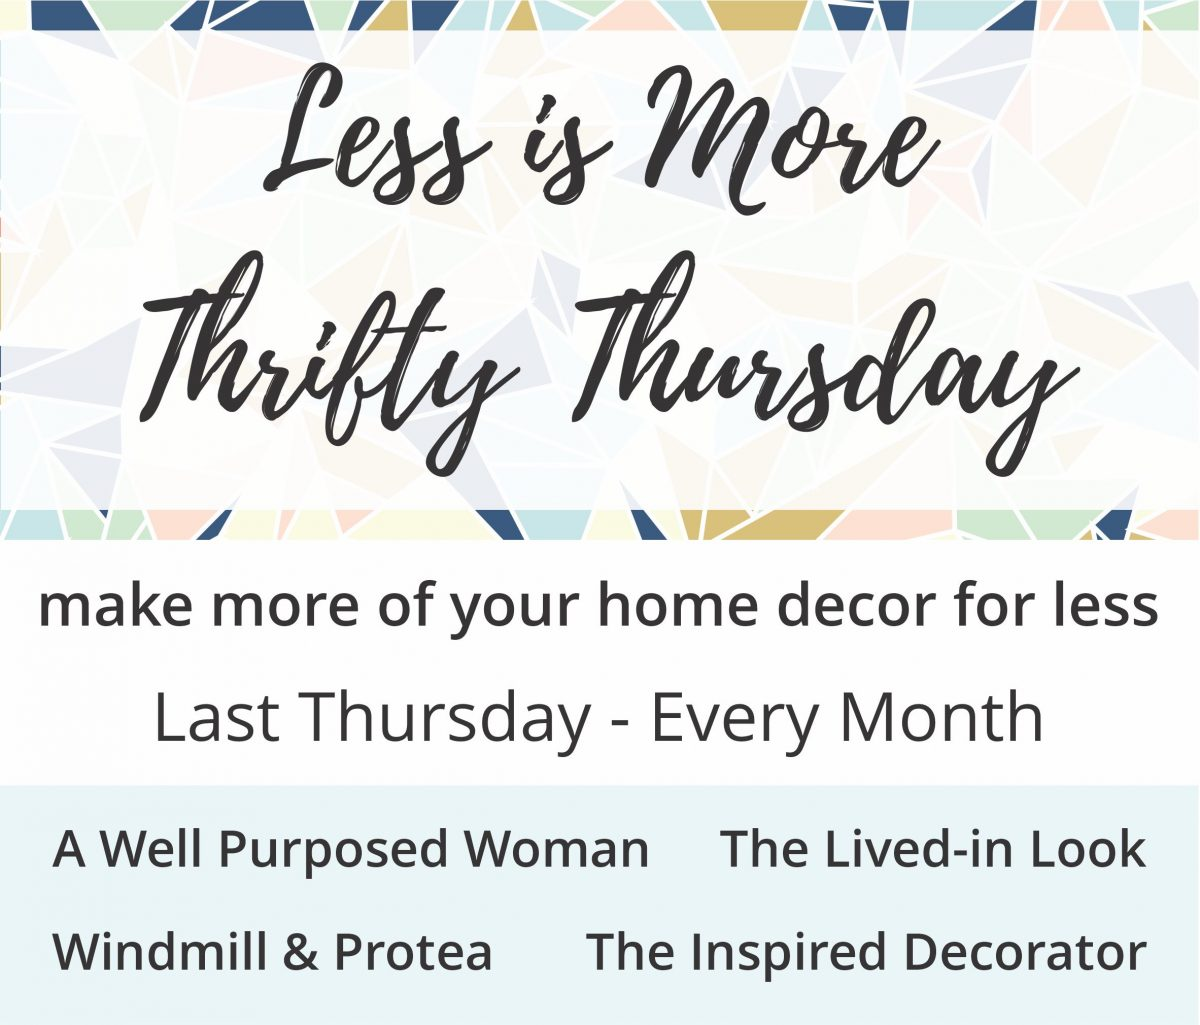 Less is more Thrifty Thursday | www.windmillprotea.com